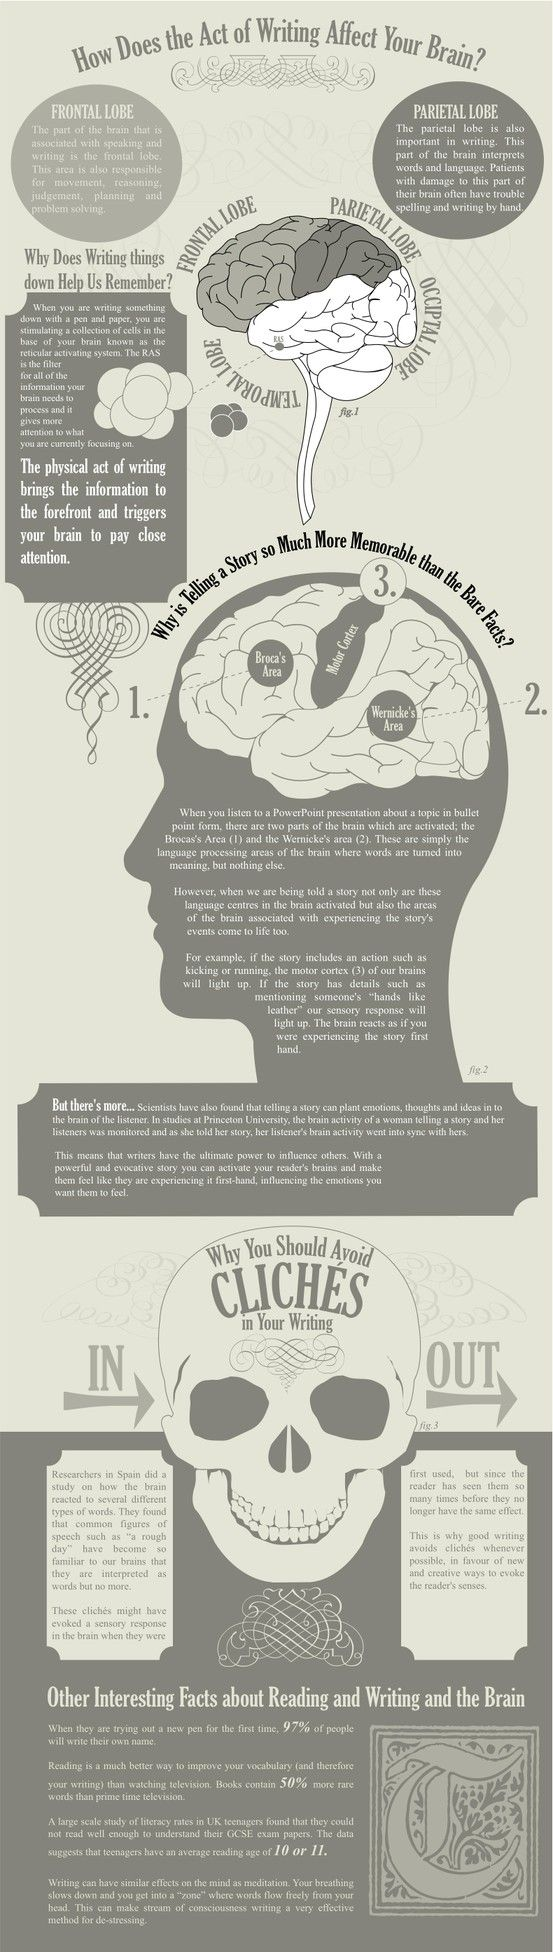 Reading and writing and the brain